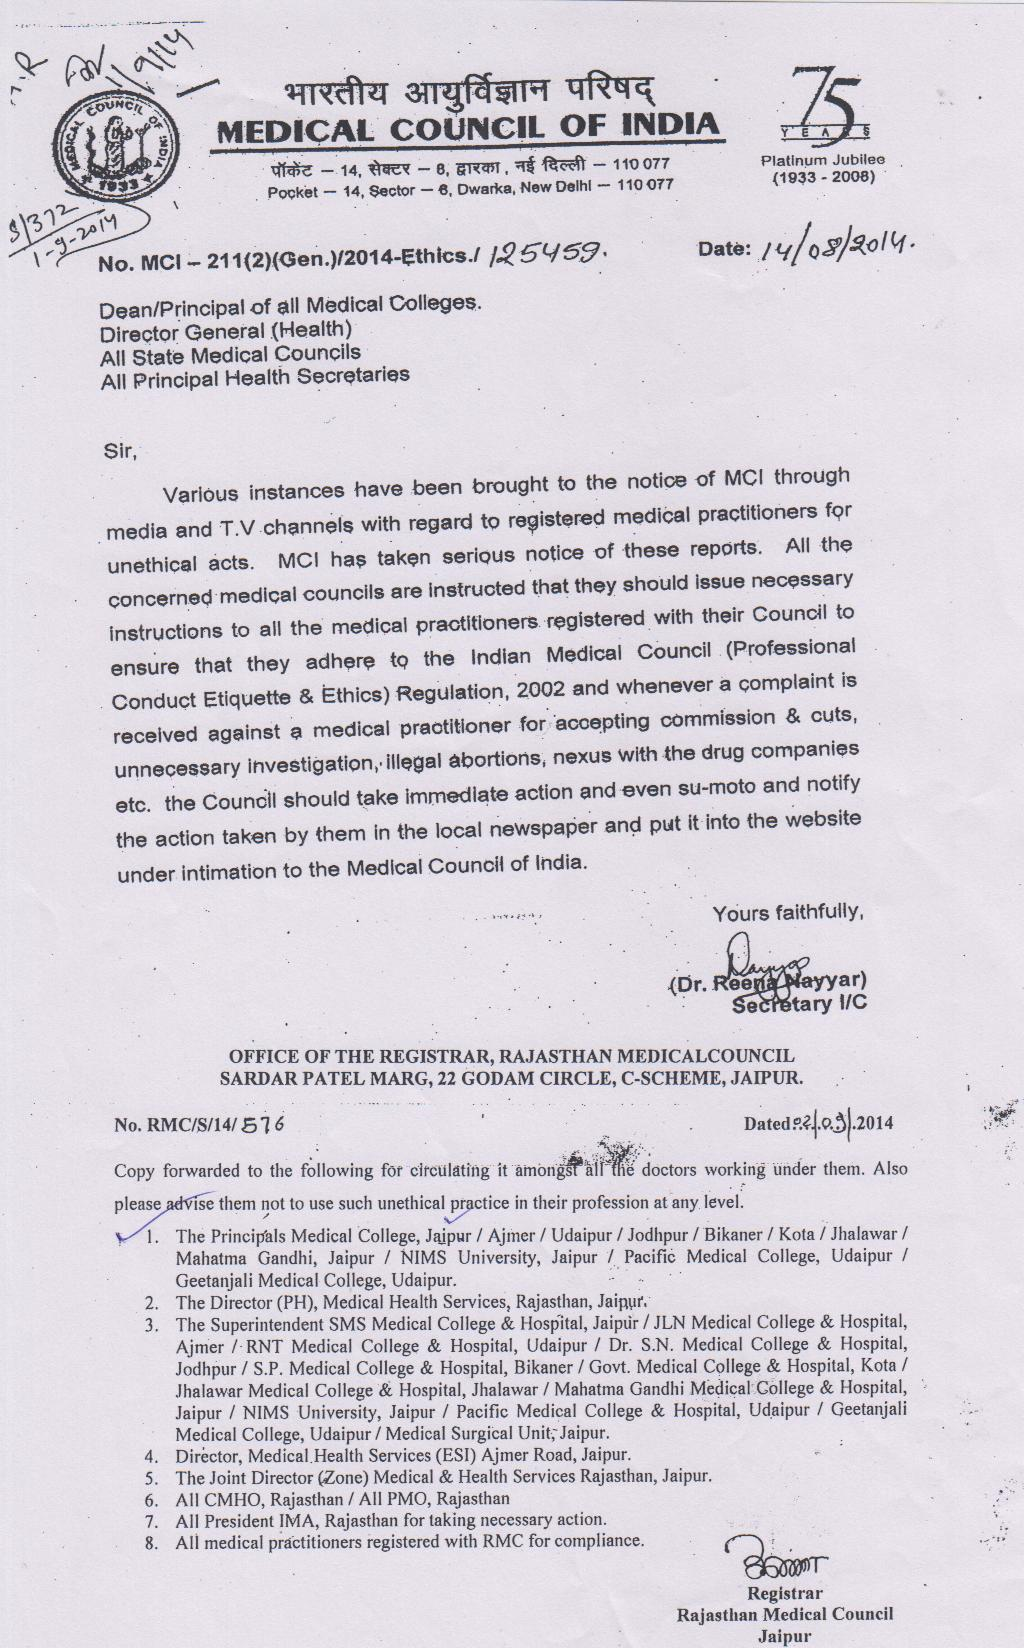 Rajasthan medical counciljaipur mci notice 14 08 2014 yelopaper Image collections